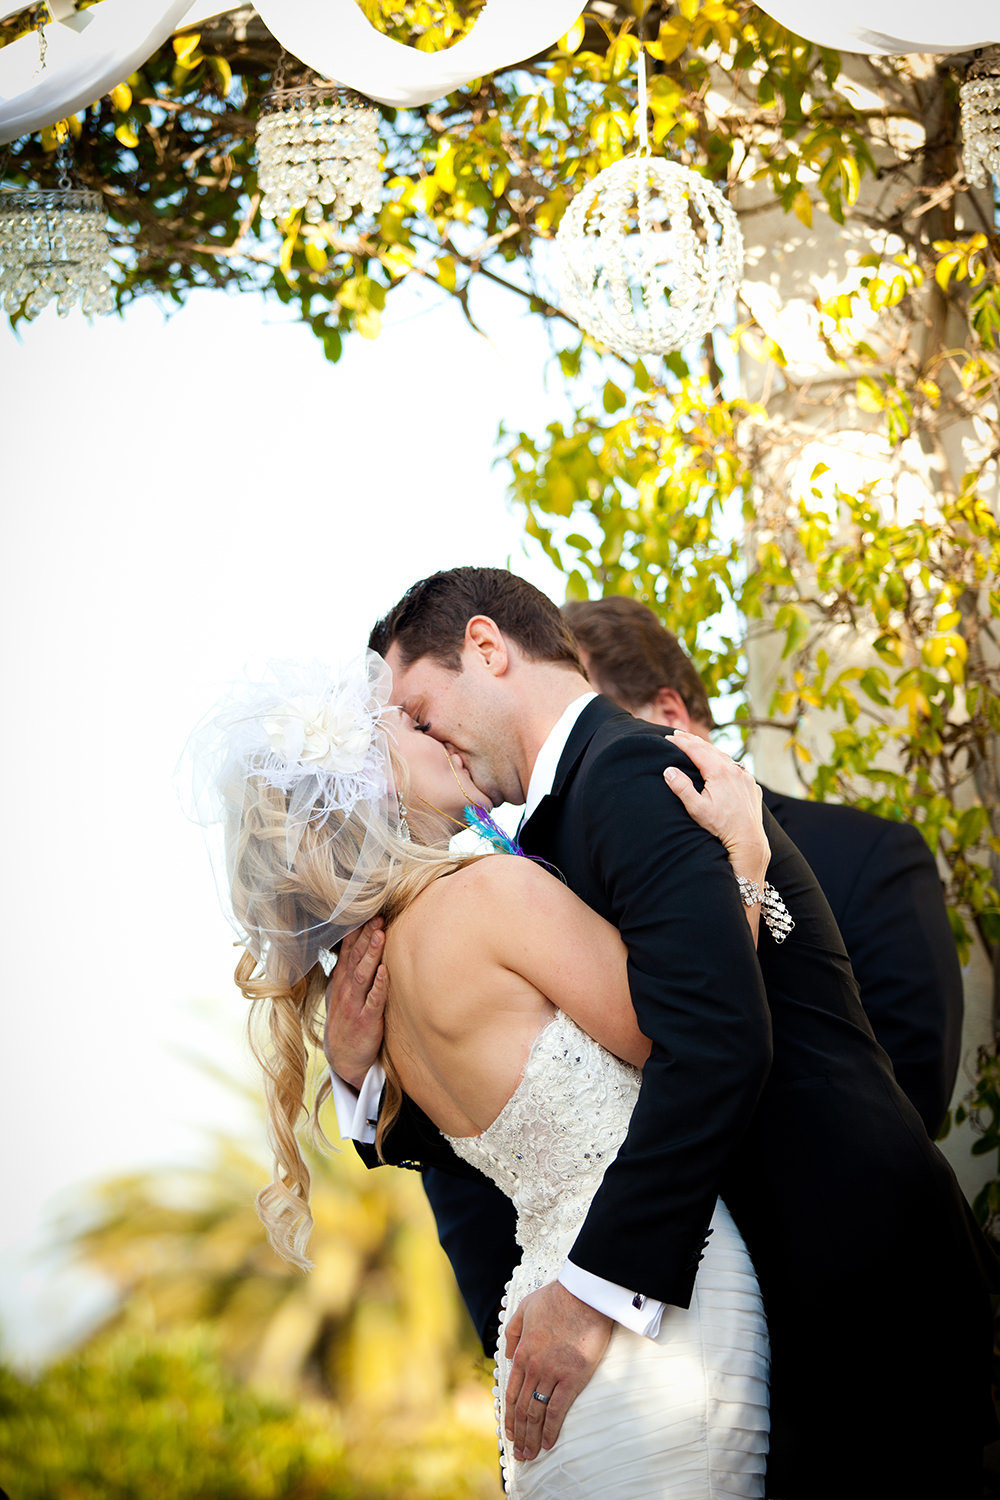 firat kiss at ceremony